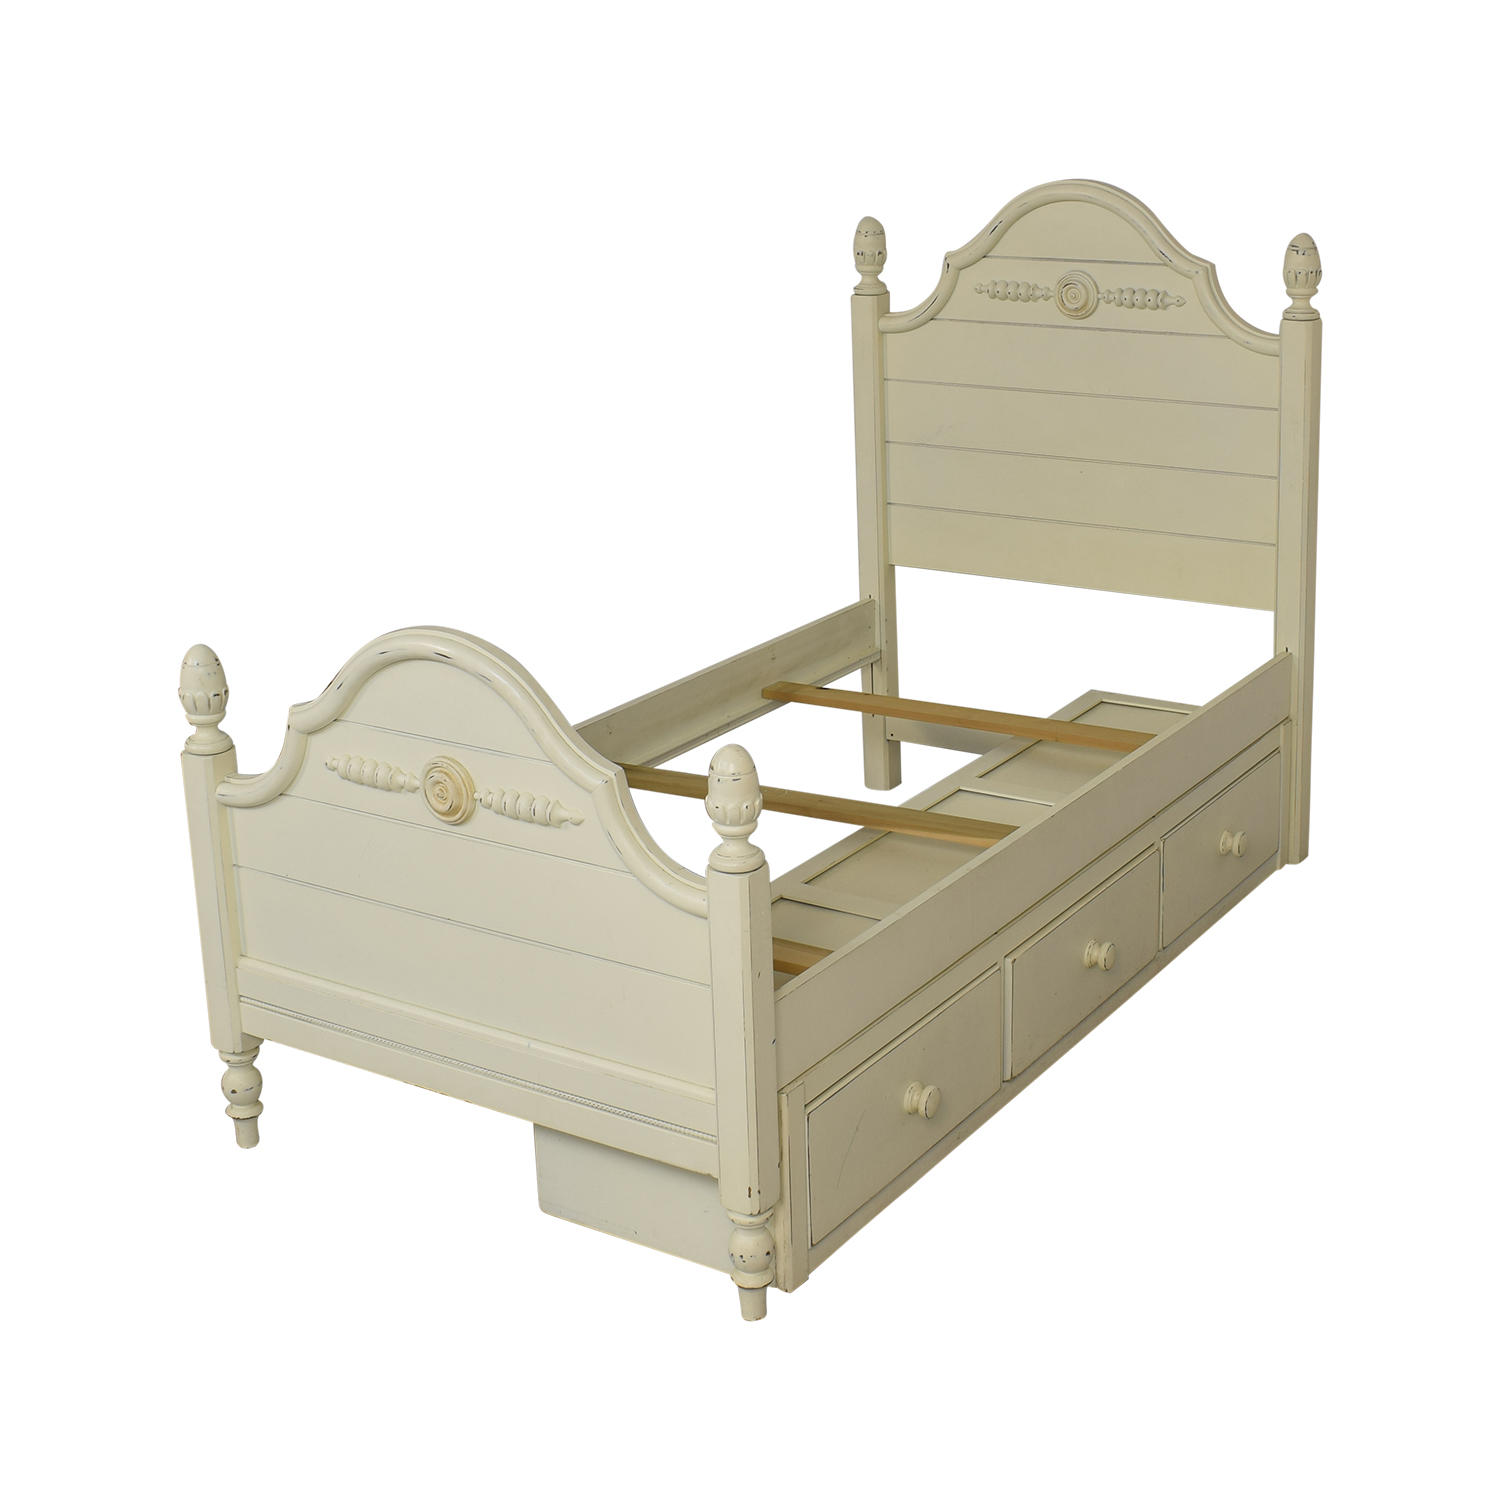 Lexington Furniture Lexington Furniture Distressed Twin Bed with Storage coupon